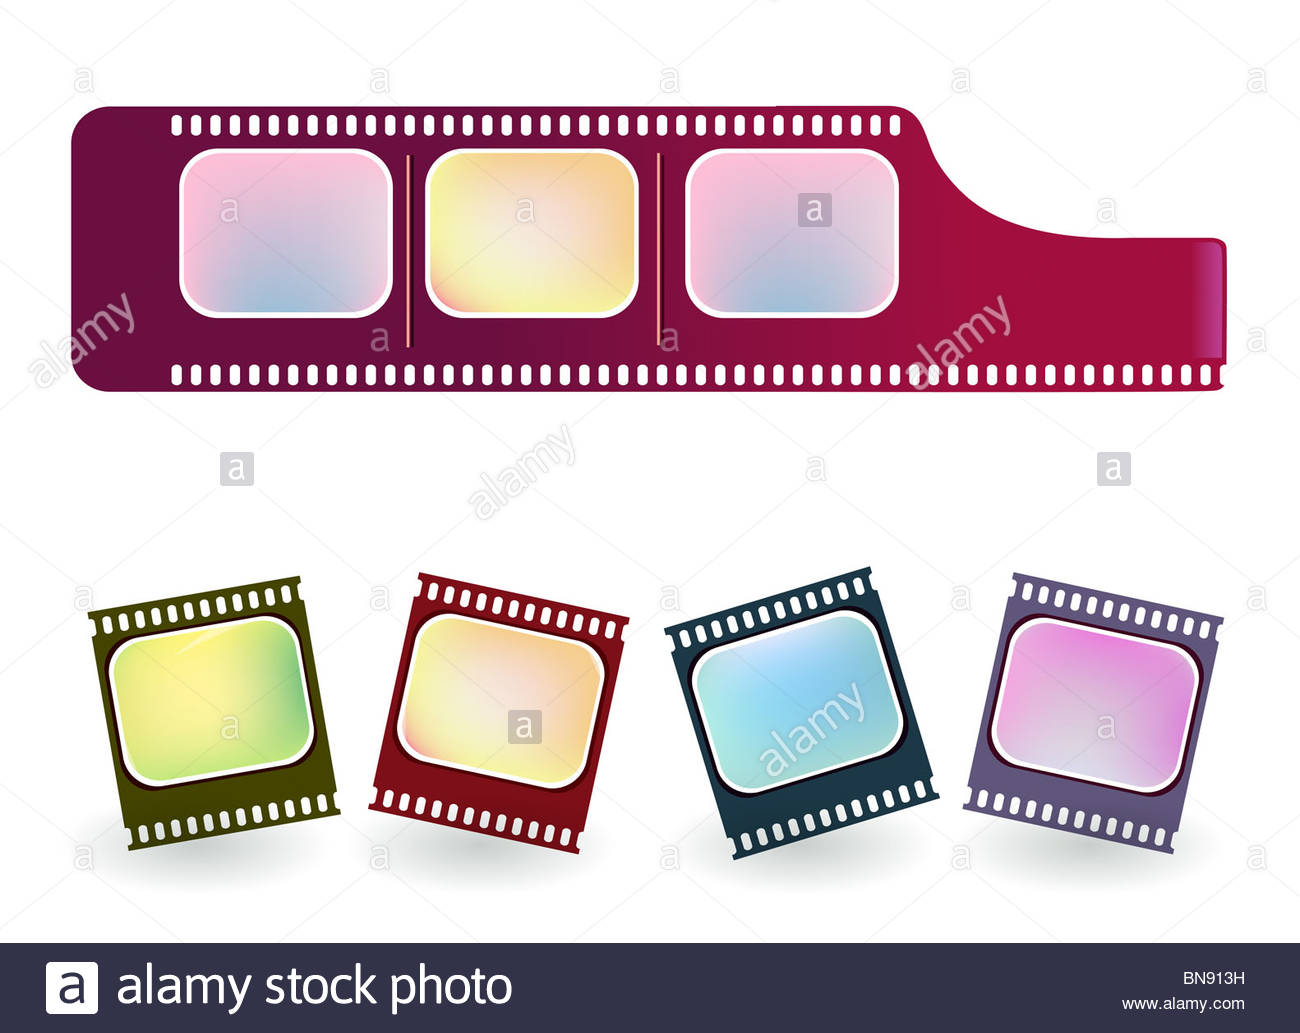 1300x1033 Illustration Drawing Of Old Negative Film Strip Stock Photo